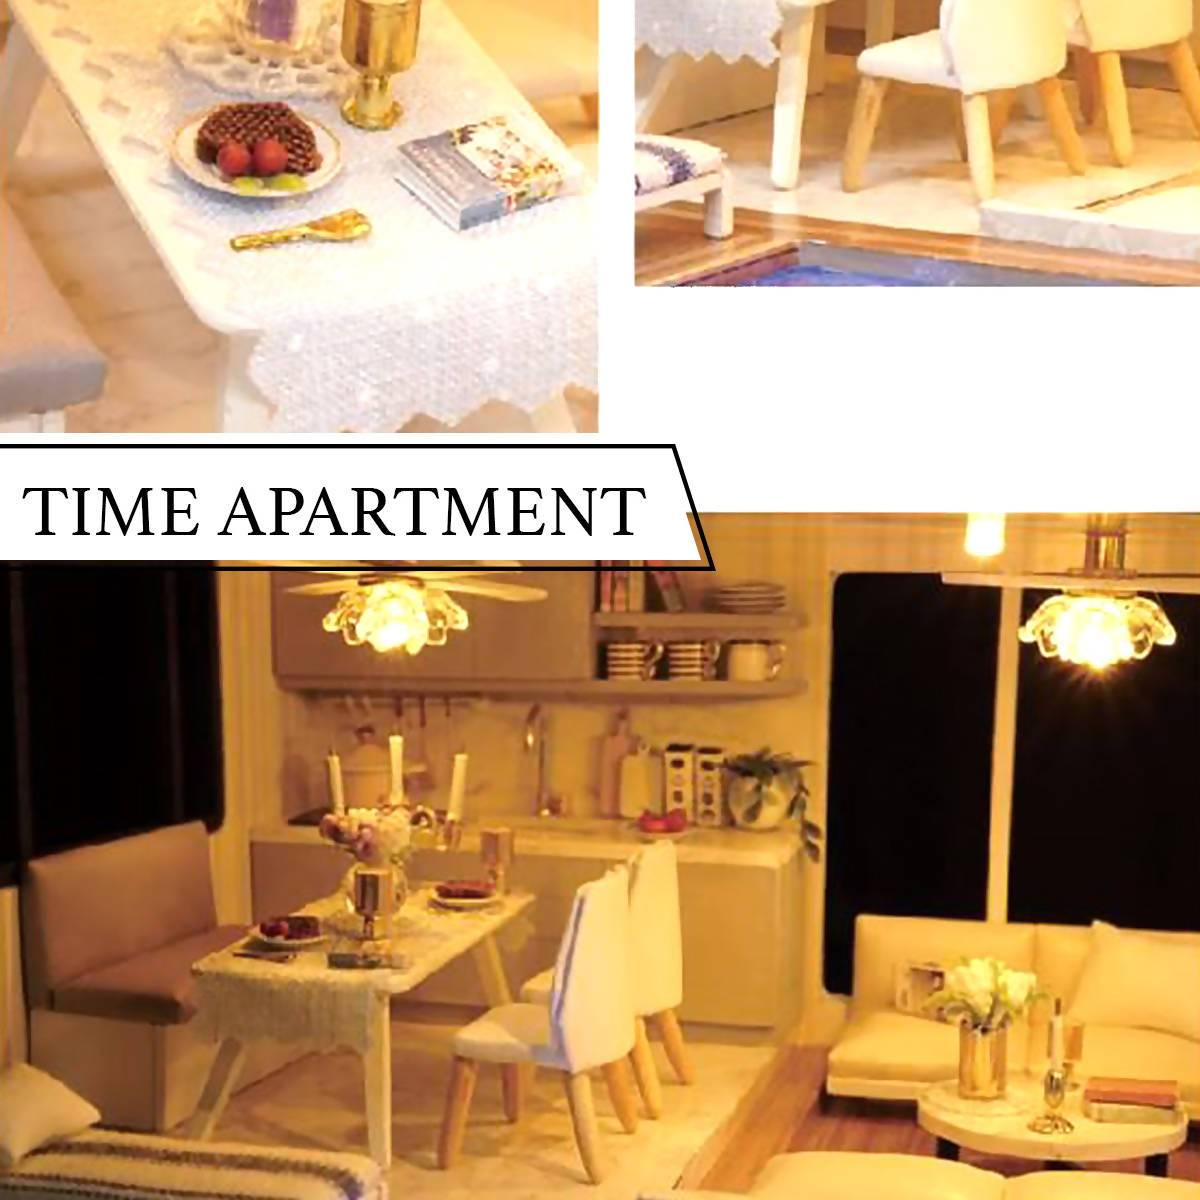 Time Apartment Doll House - DIY Crafts - Blue Stone Craft - Naiise